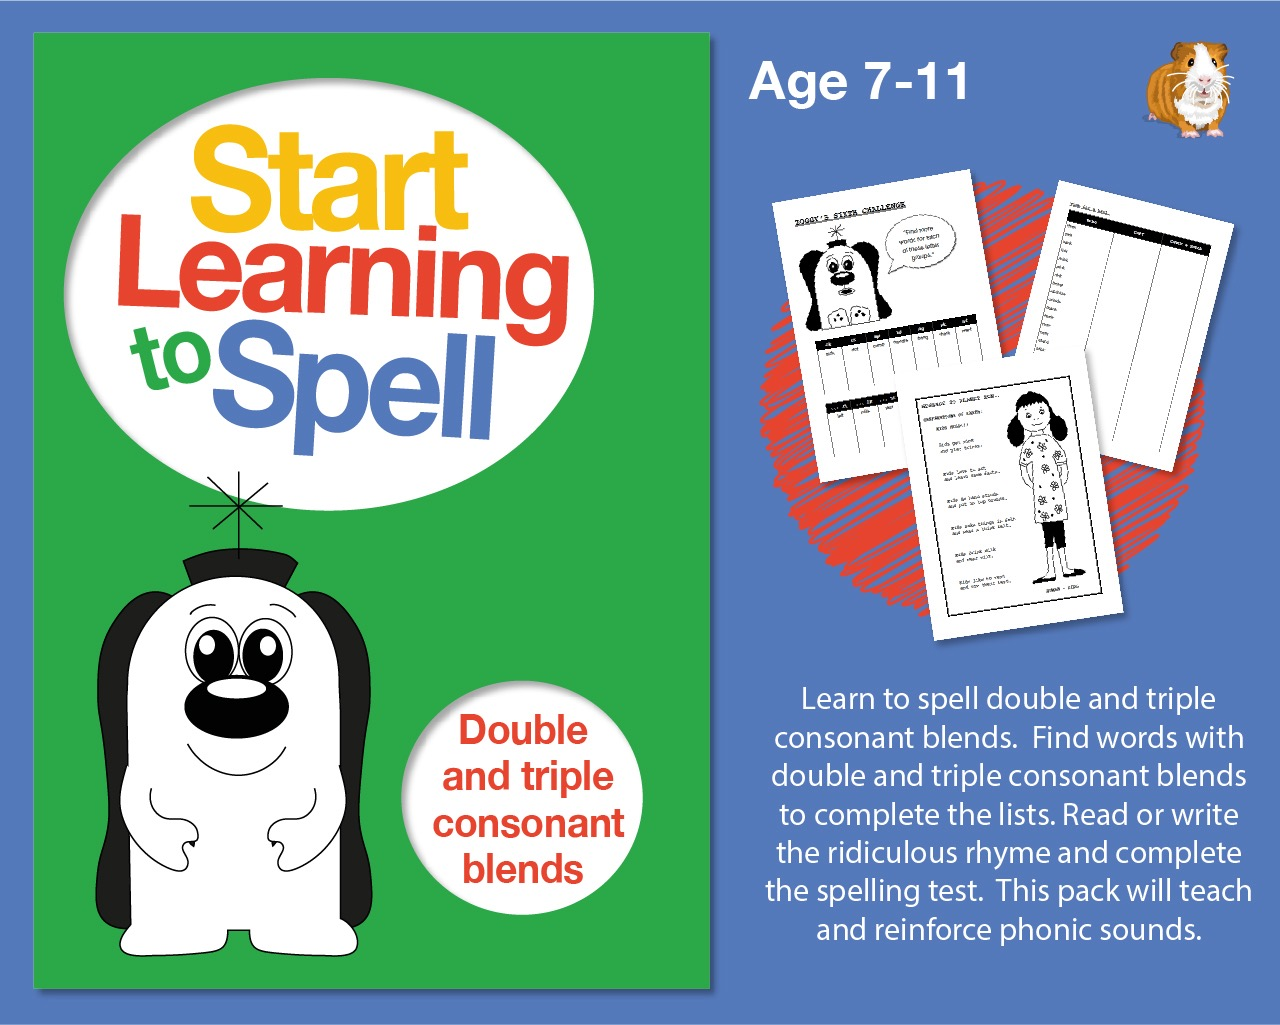 Learn To Spell Double And Triple Consonant Blends: Learn To Spell With Phonics (7-11)